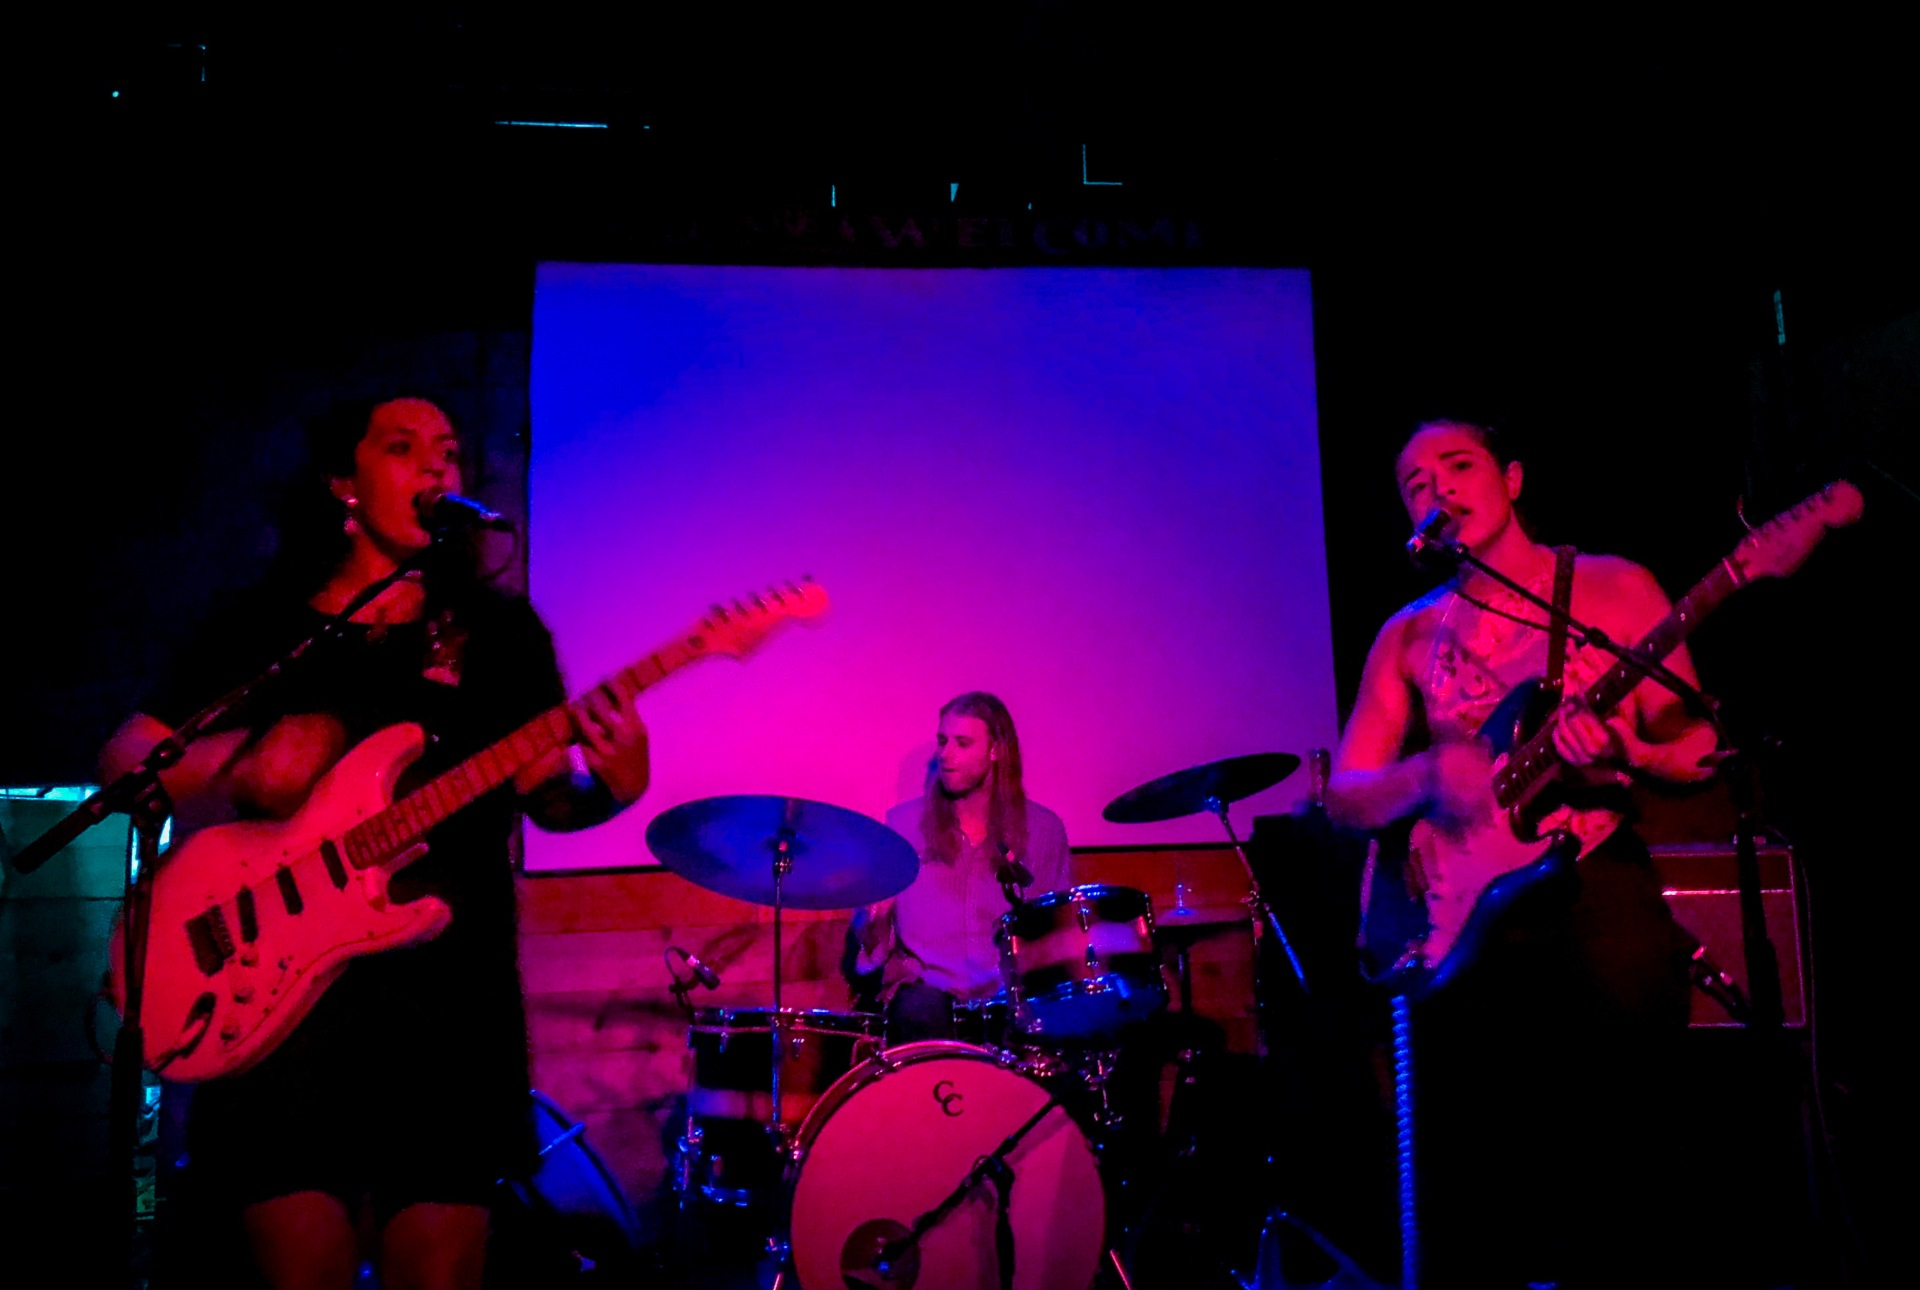 The band on a small stage with two guitarists in the foreground and a drummer behind them.